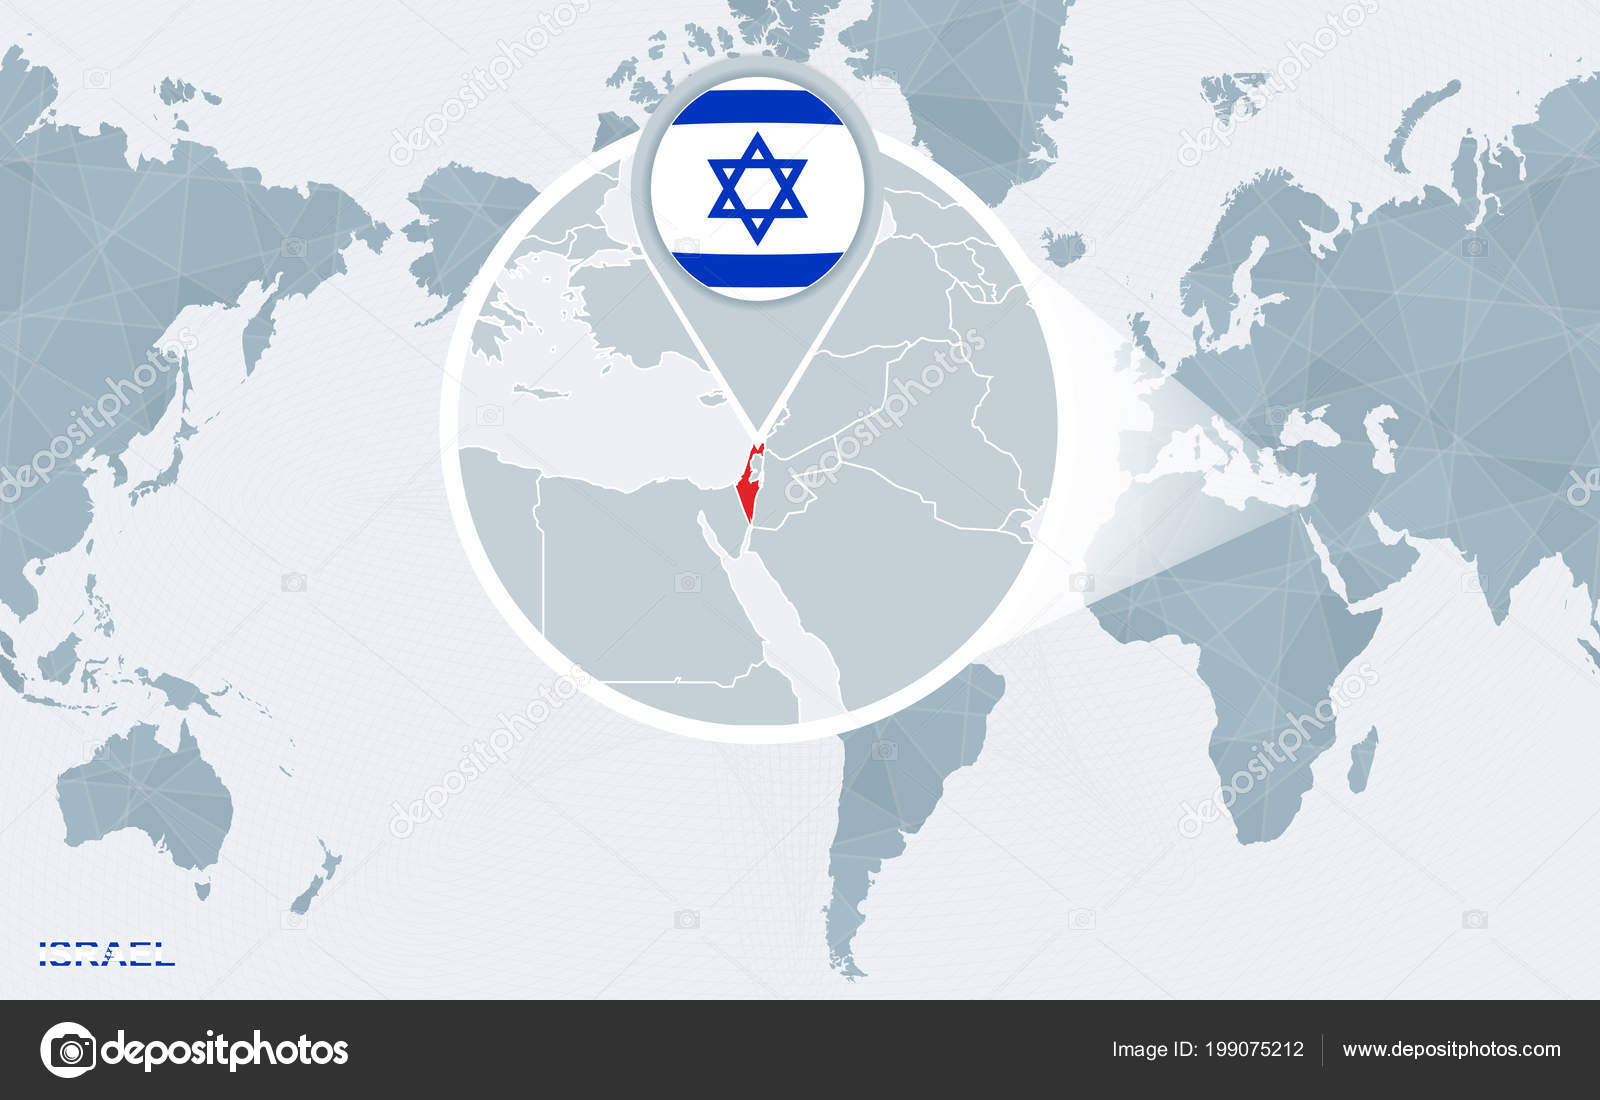 World Map Centered America Magnified Israel Blue Flag Map Israel ...